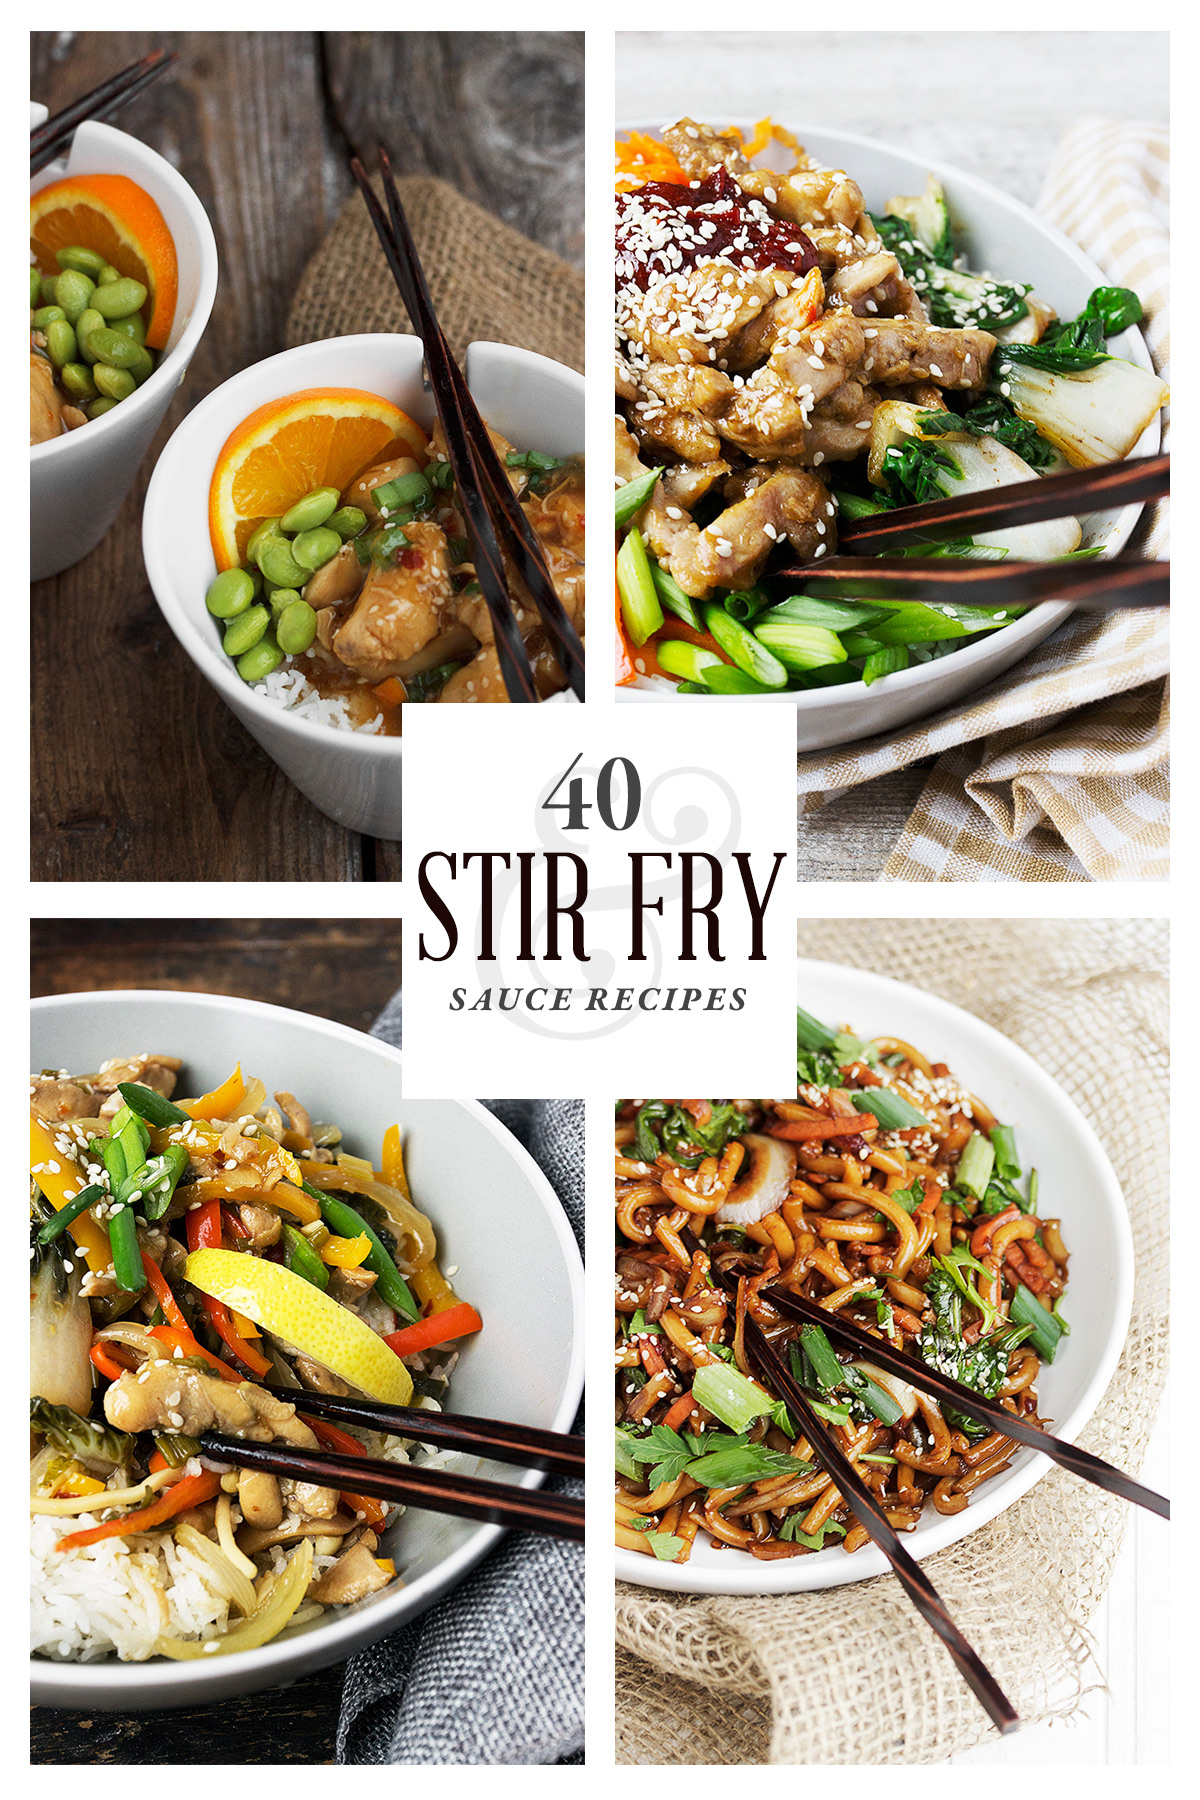 40 Basic Stir Fry Sauce Recipes Seasons And Suppers